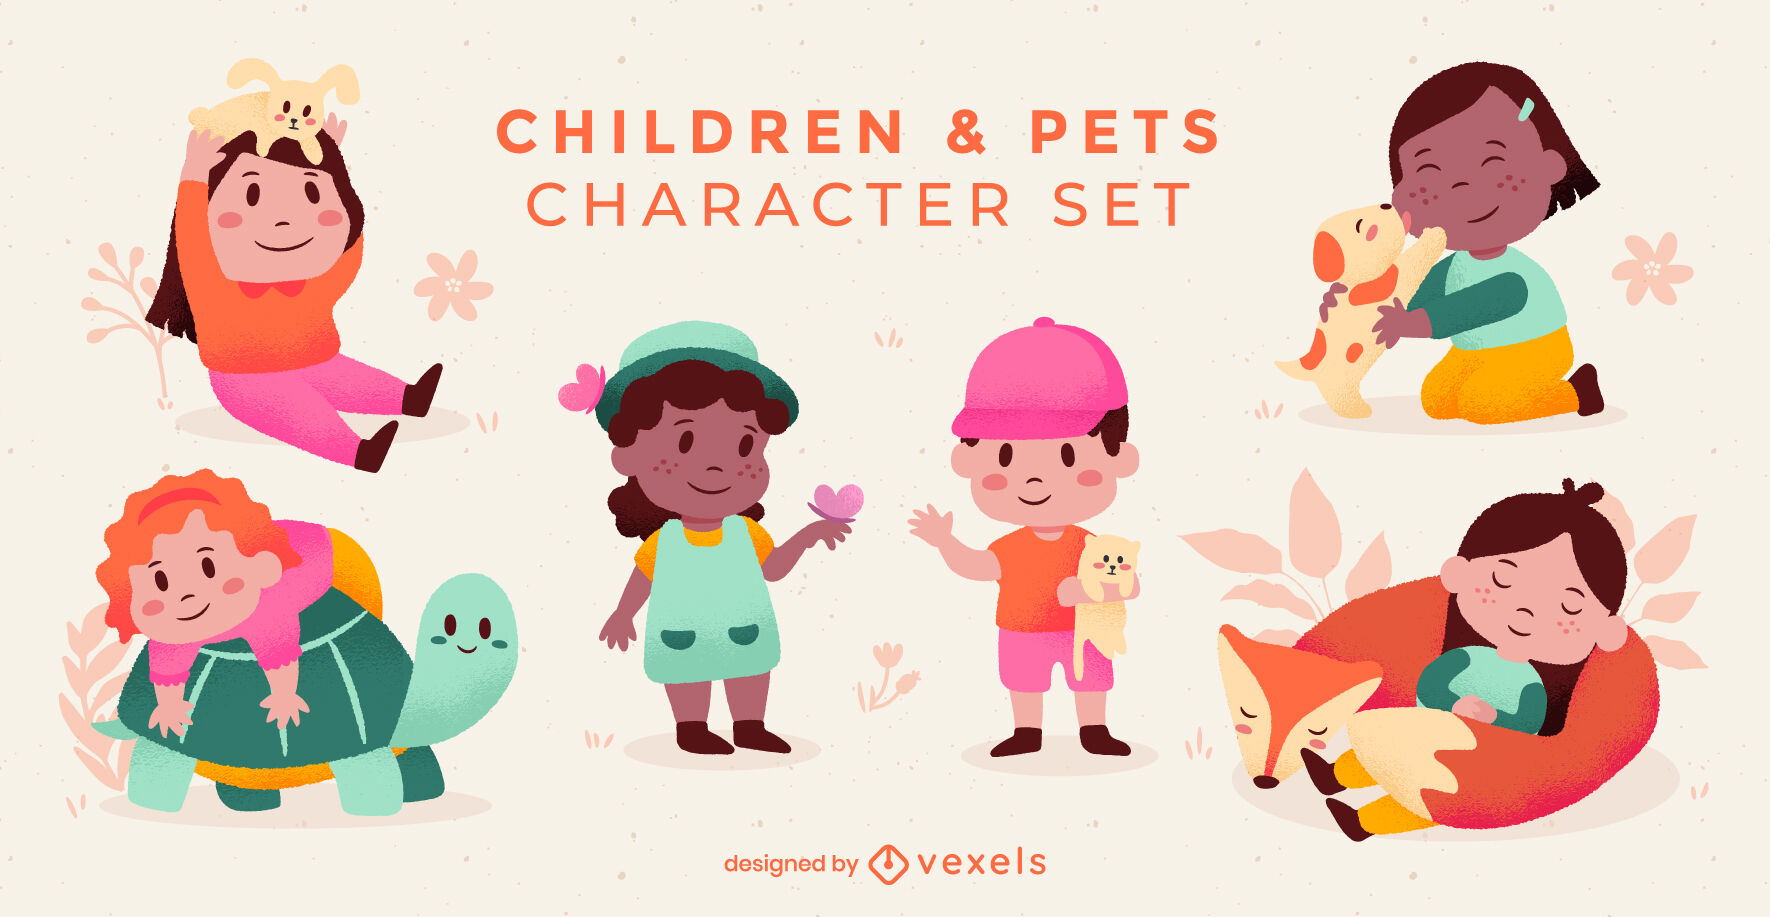 Children and pets characters set